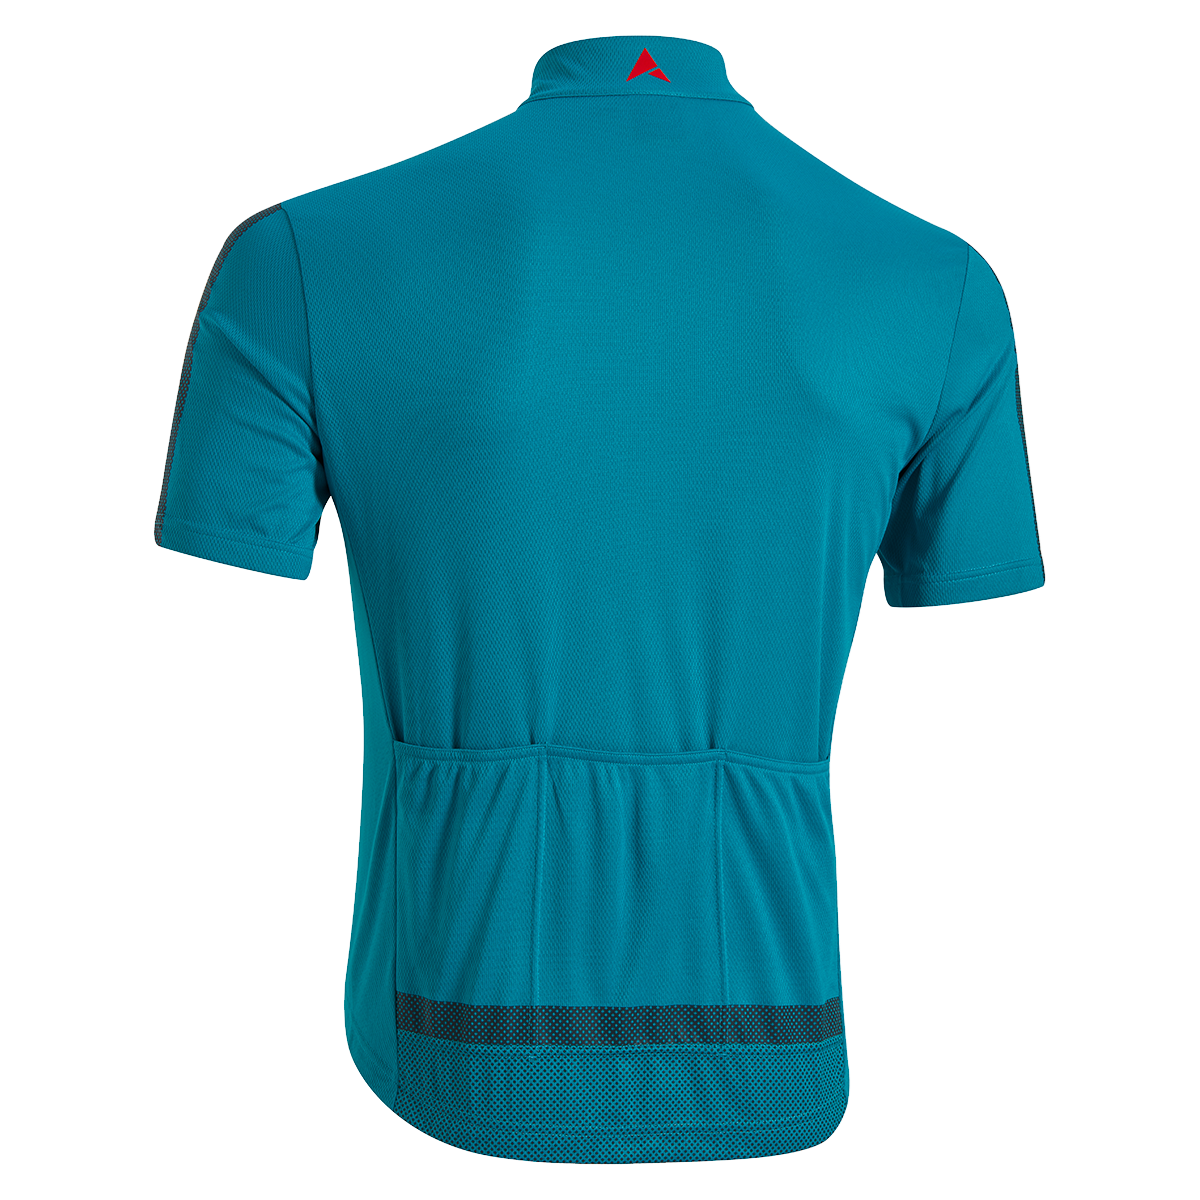 Altura Mens Nightvision Short Sleeve Cycling Jersey Caneel Bay